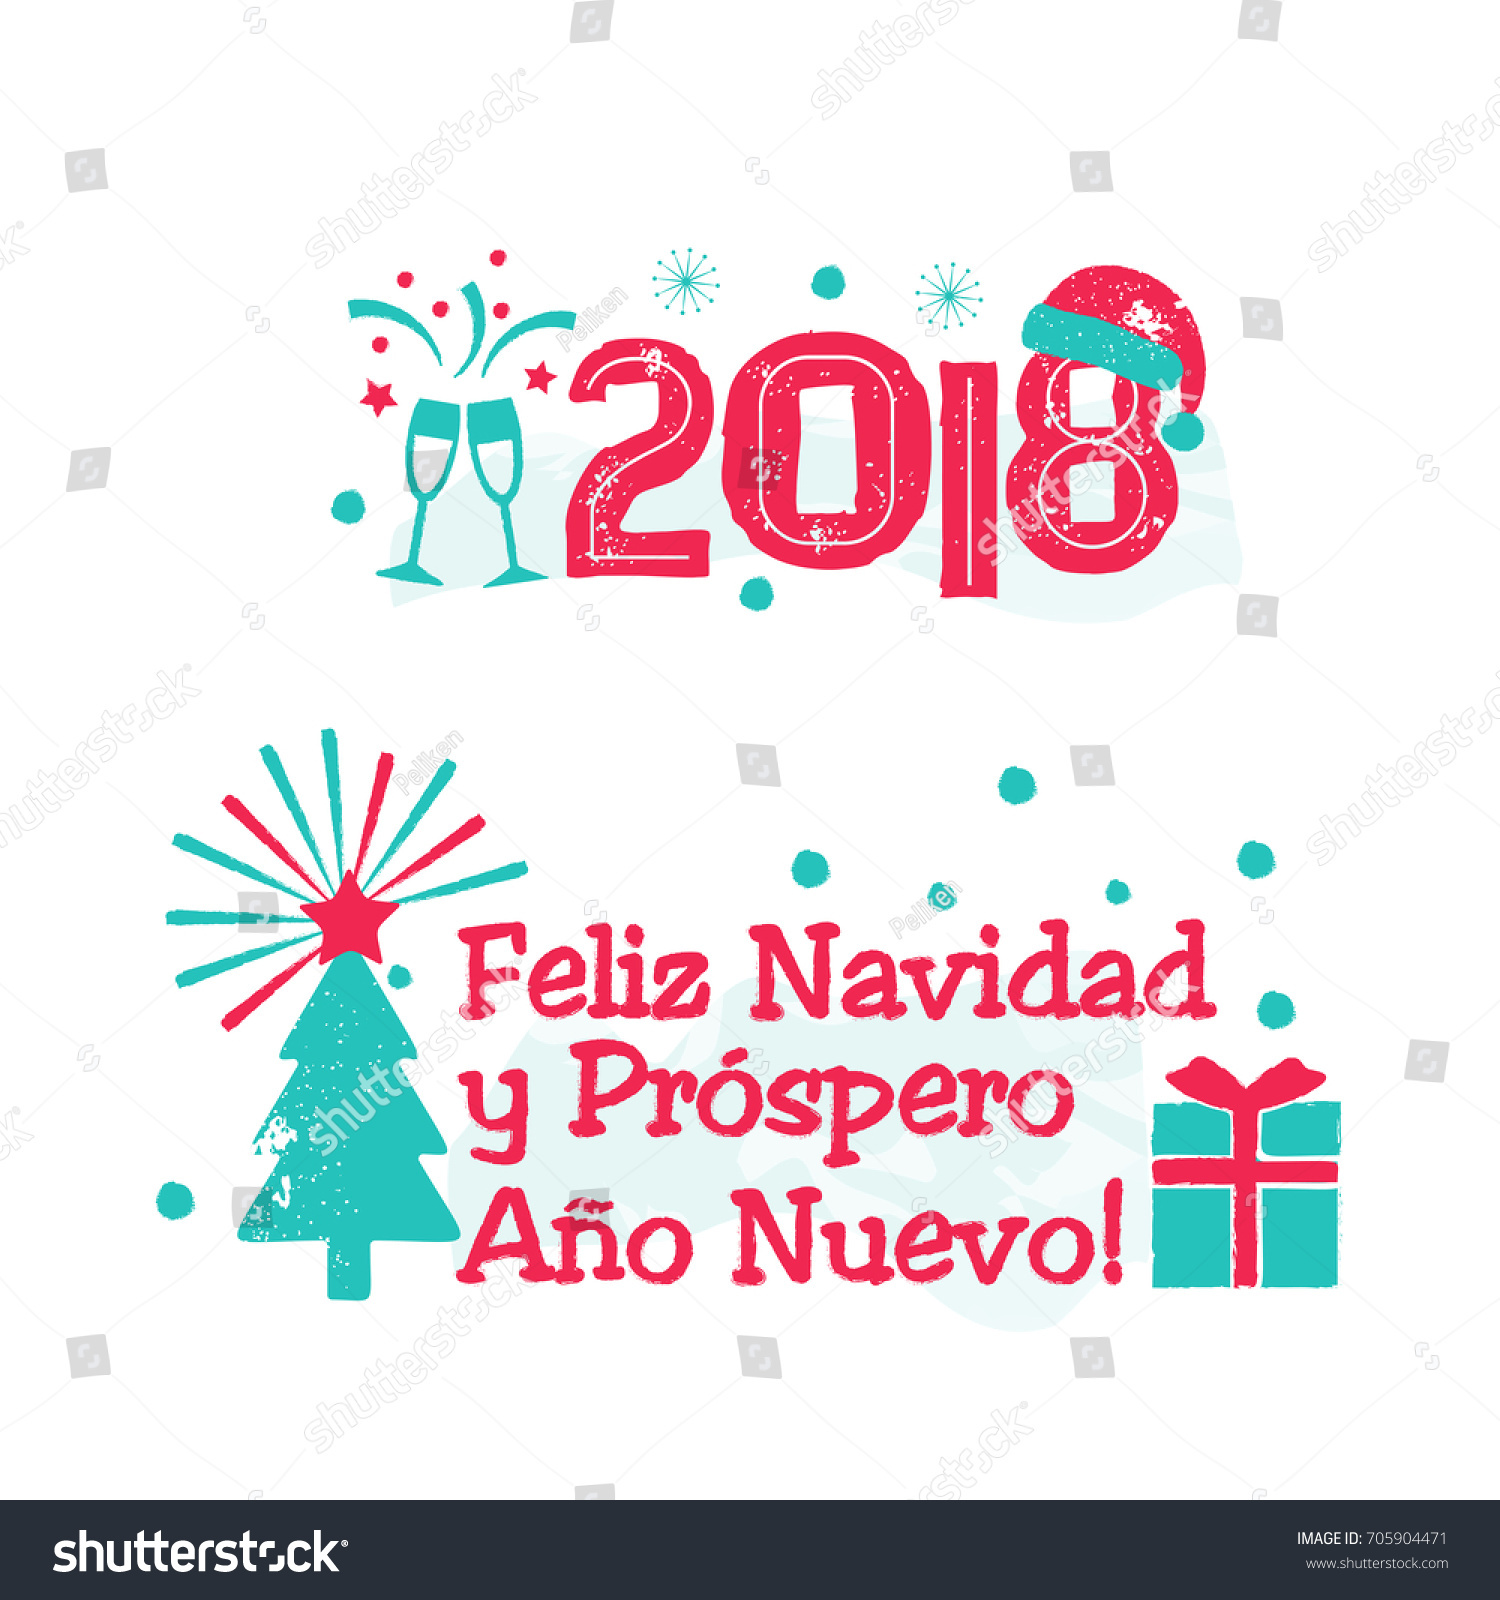 feliz navidad merry christmas spanish language happy new year card with tree and fireworks